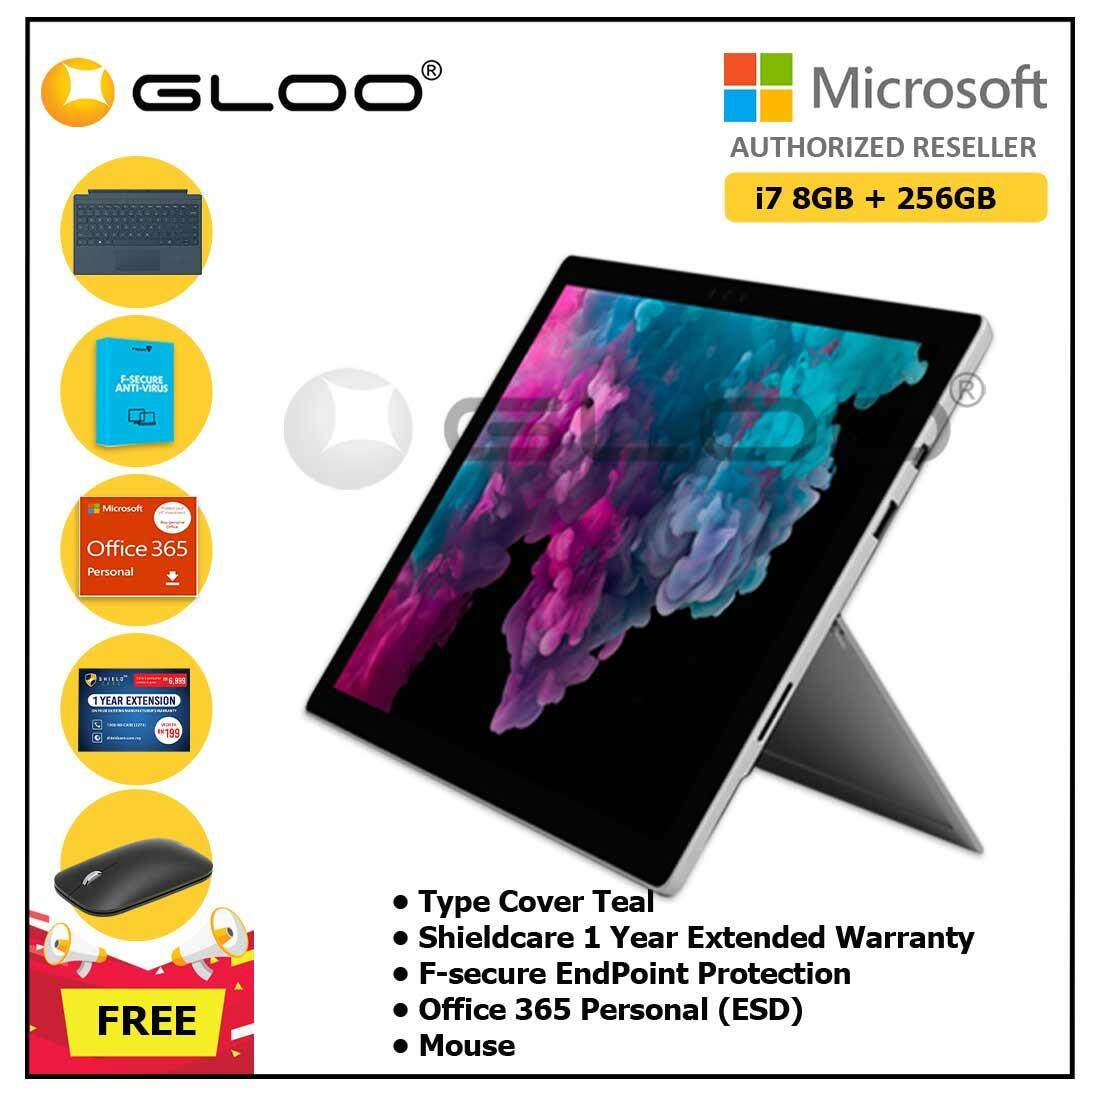 Microsoft Surface Pro 6 Core i7/8GB RAM - 256GB + Type Cover Cobalt Blue + Office 365 Personal (ESD) + Shield Care 1 Year Extended Warranty + F-Secure End Point Protection + Mouse